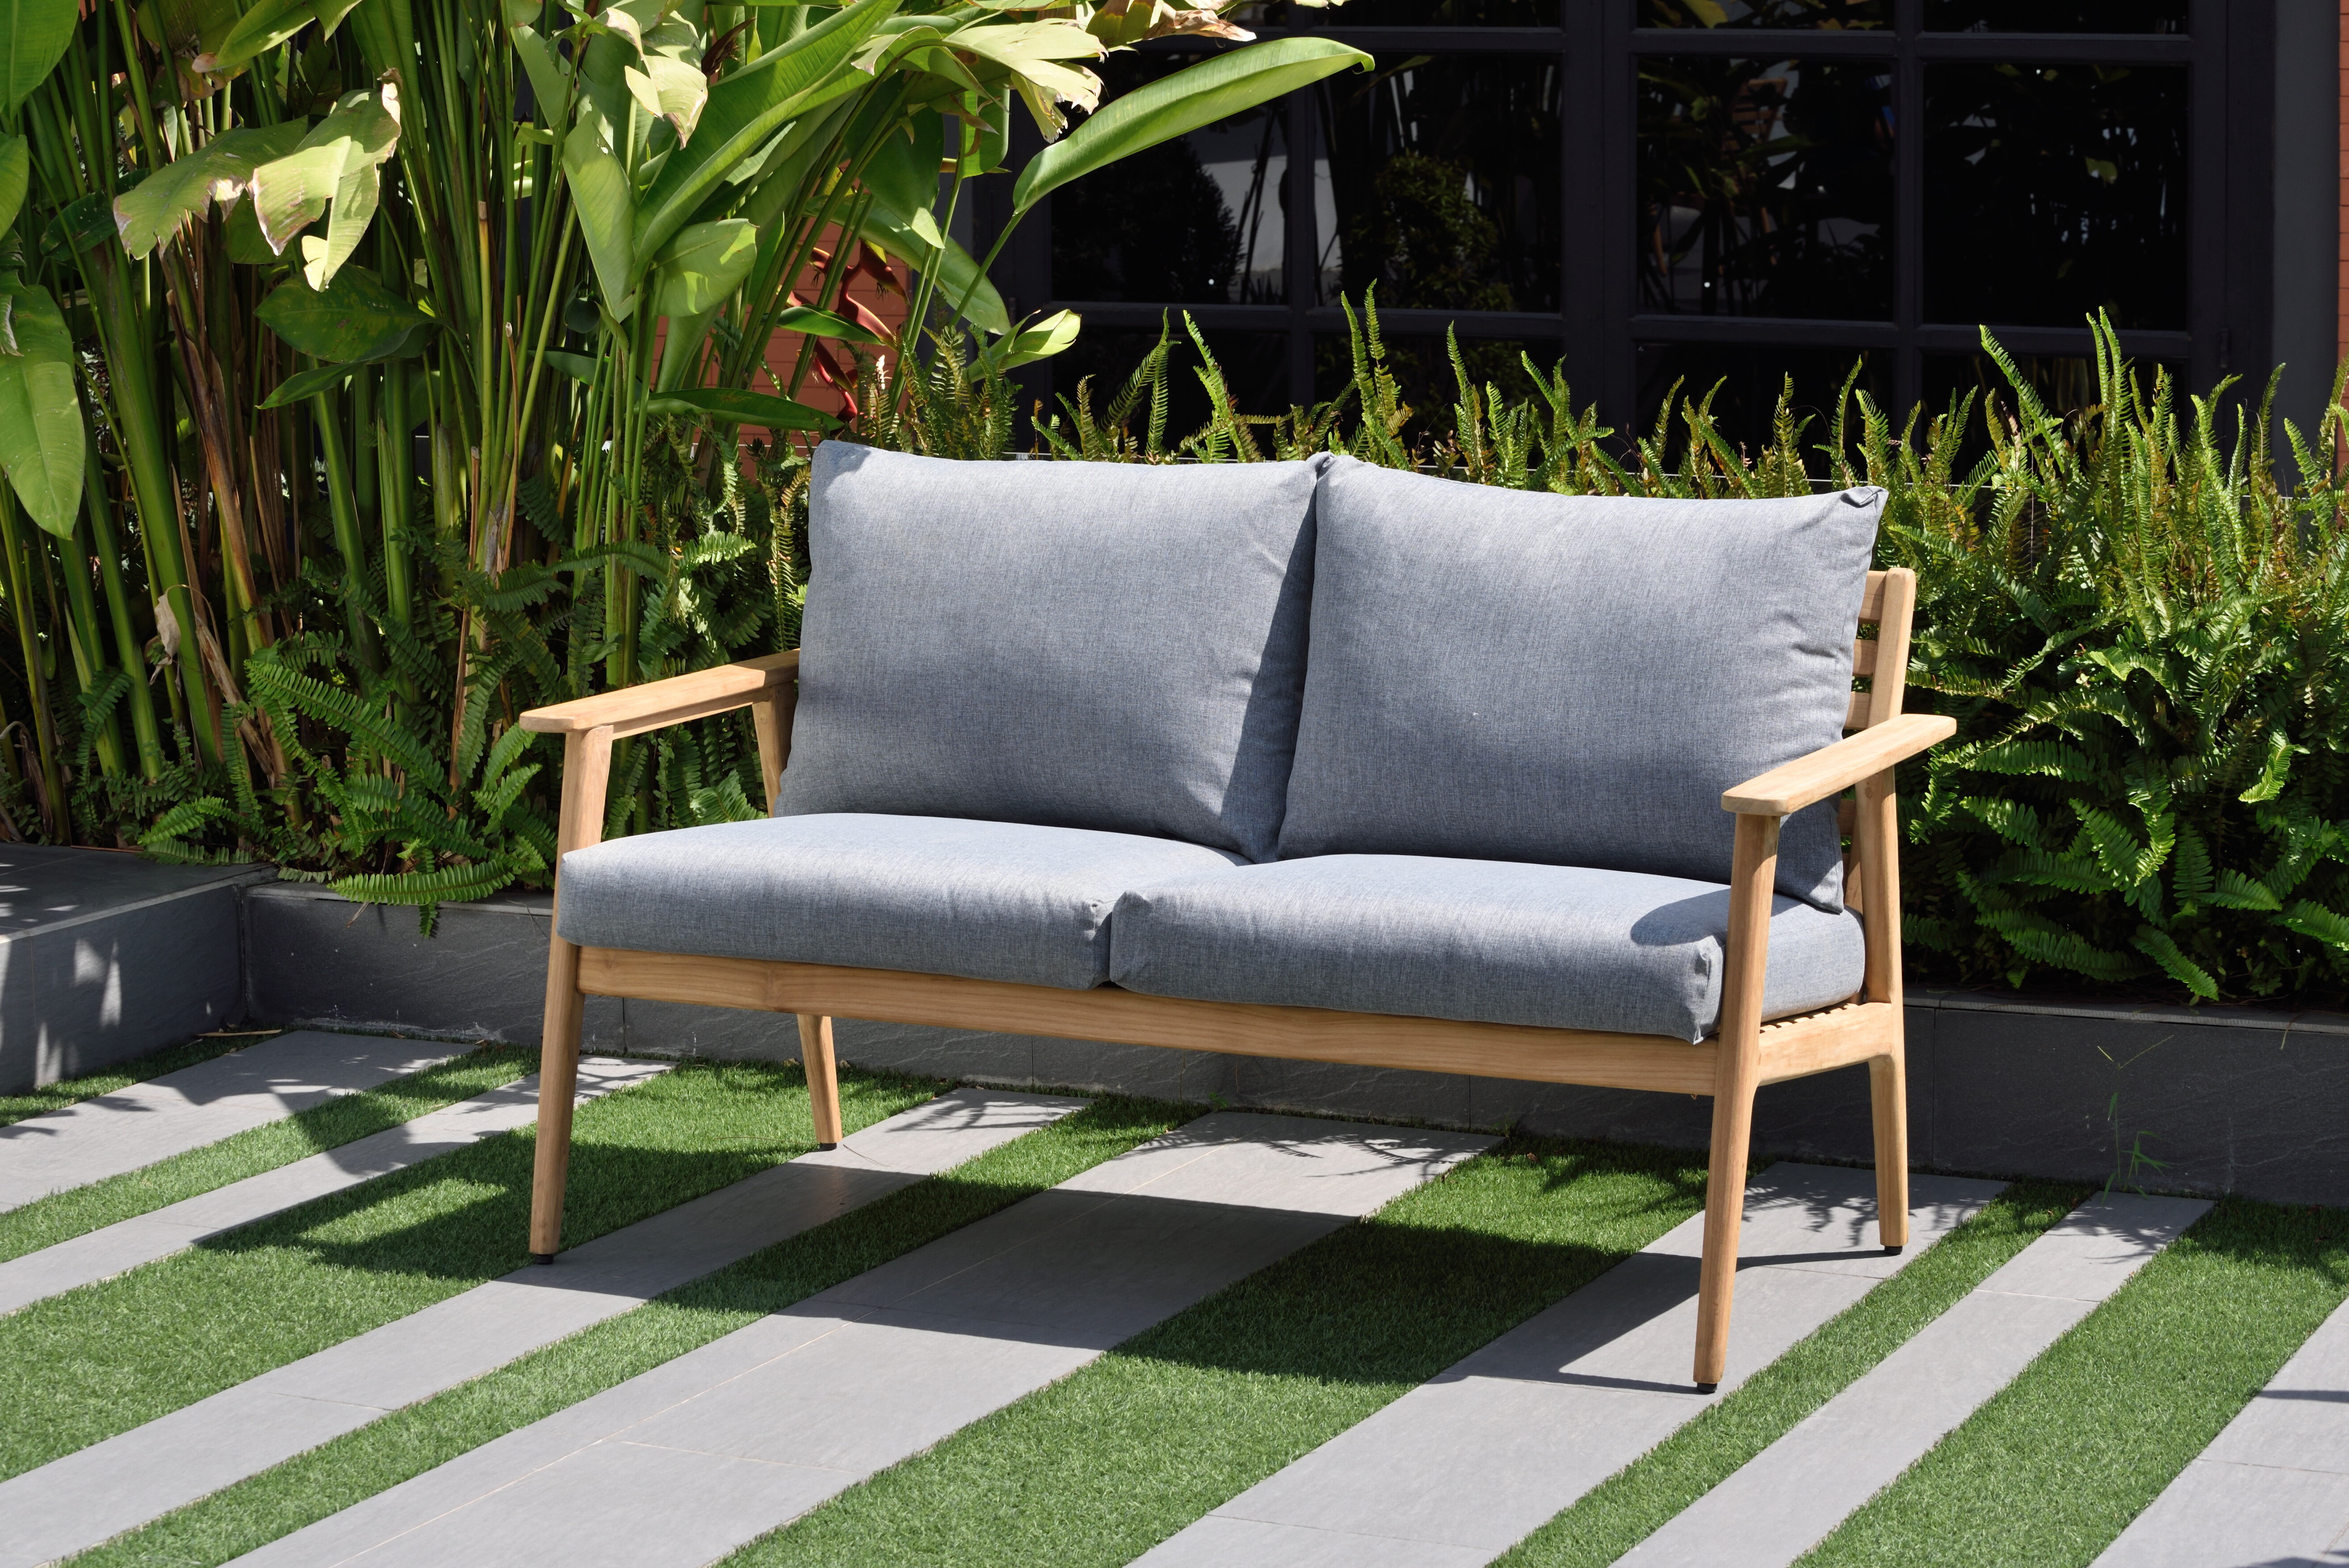 Latest Darrah Deep Seating Teak Patio Sofa With Cushions Within Beal Patio Daybeds With Cushions (Gallery 21 of 25)